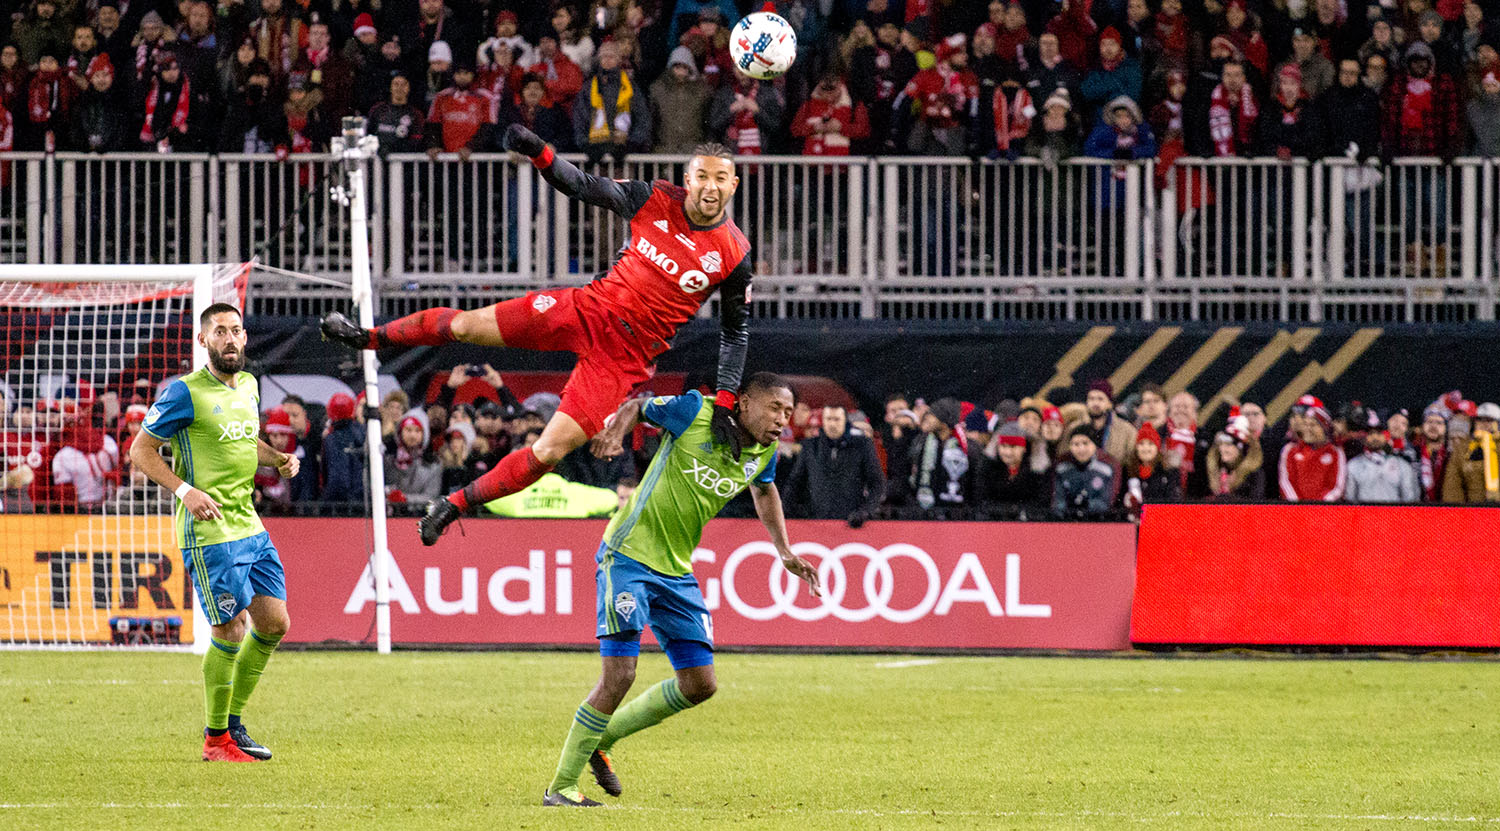 Justin Morrow takes flight during the 2017 MLS Cup Final to get a header to the ball at BMO FIeld.Image by Dennis Marciniak of denMAR Media.